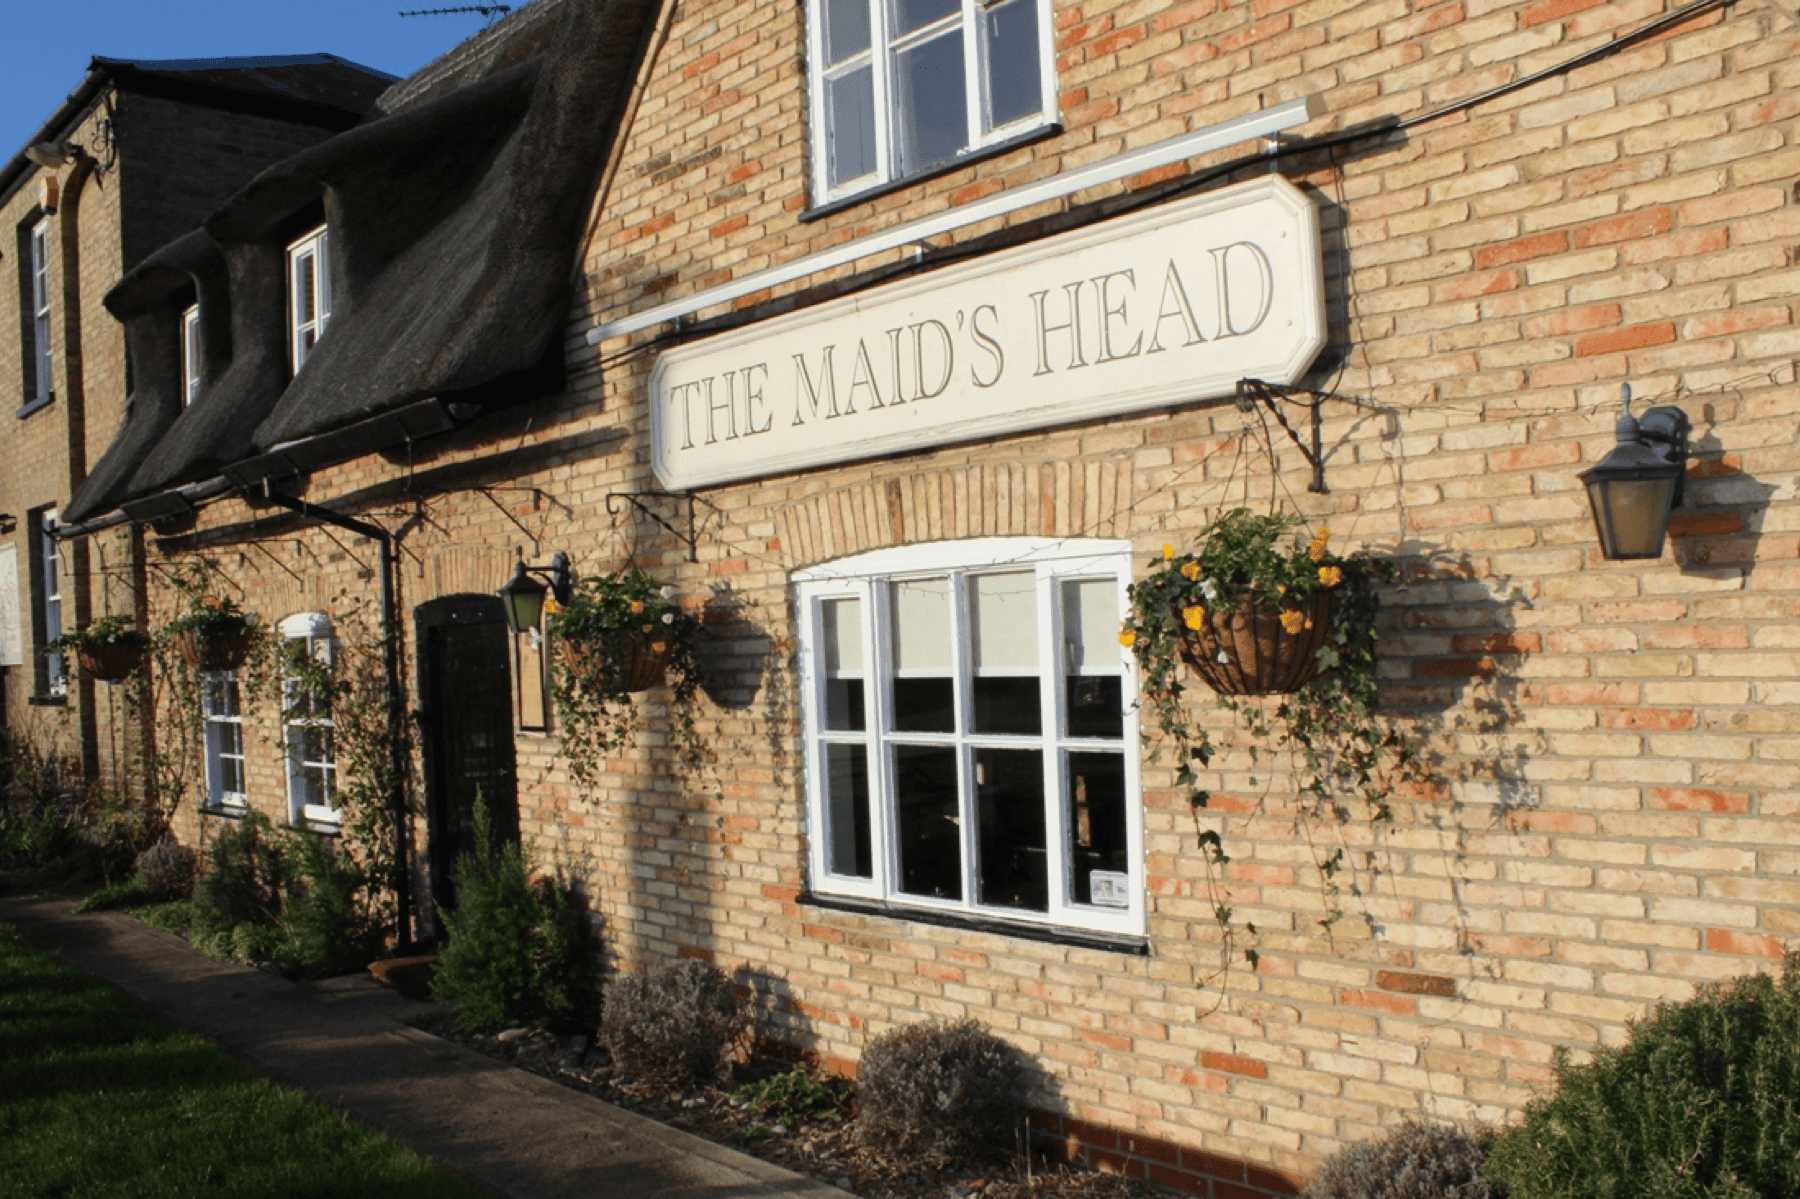 The Maid's Head